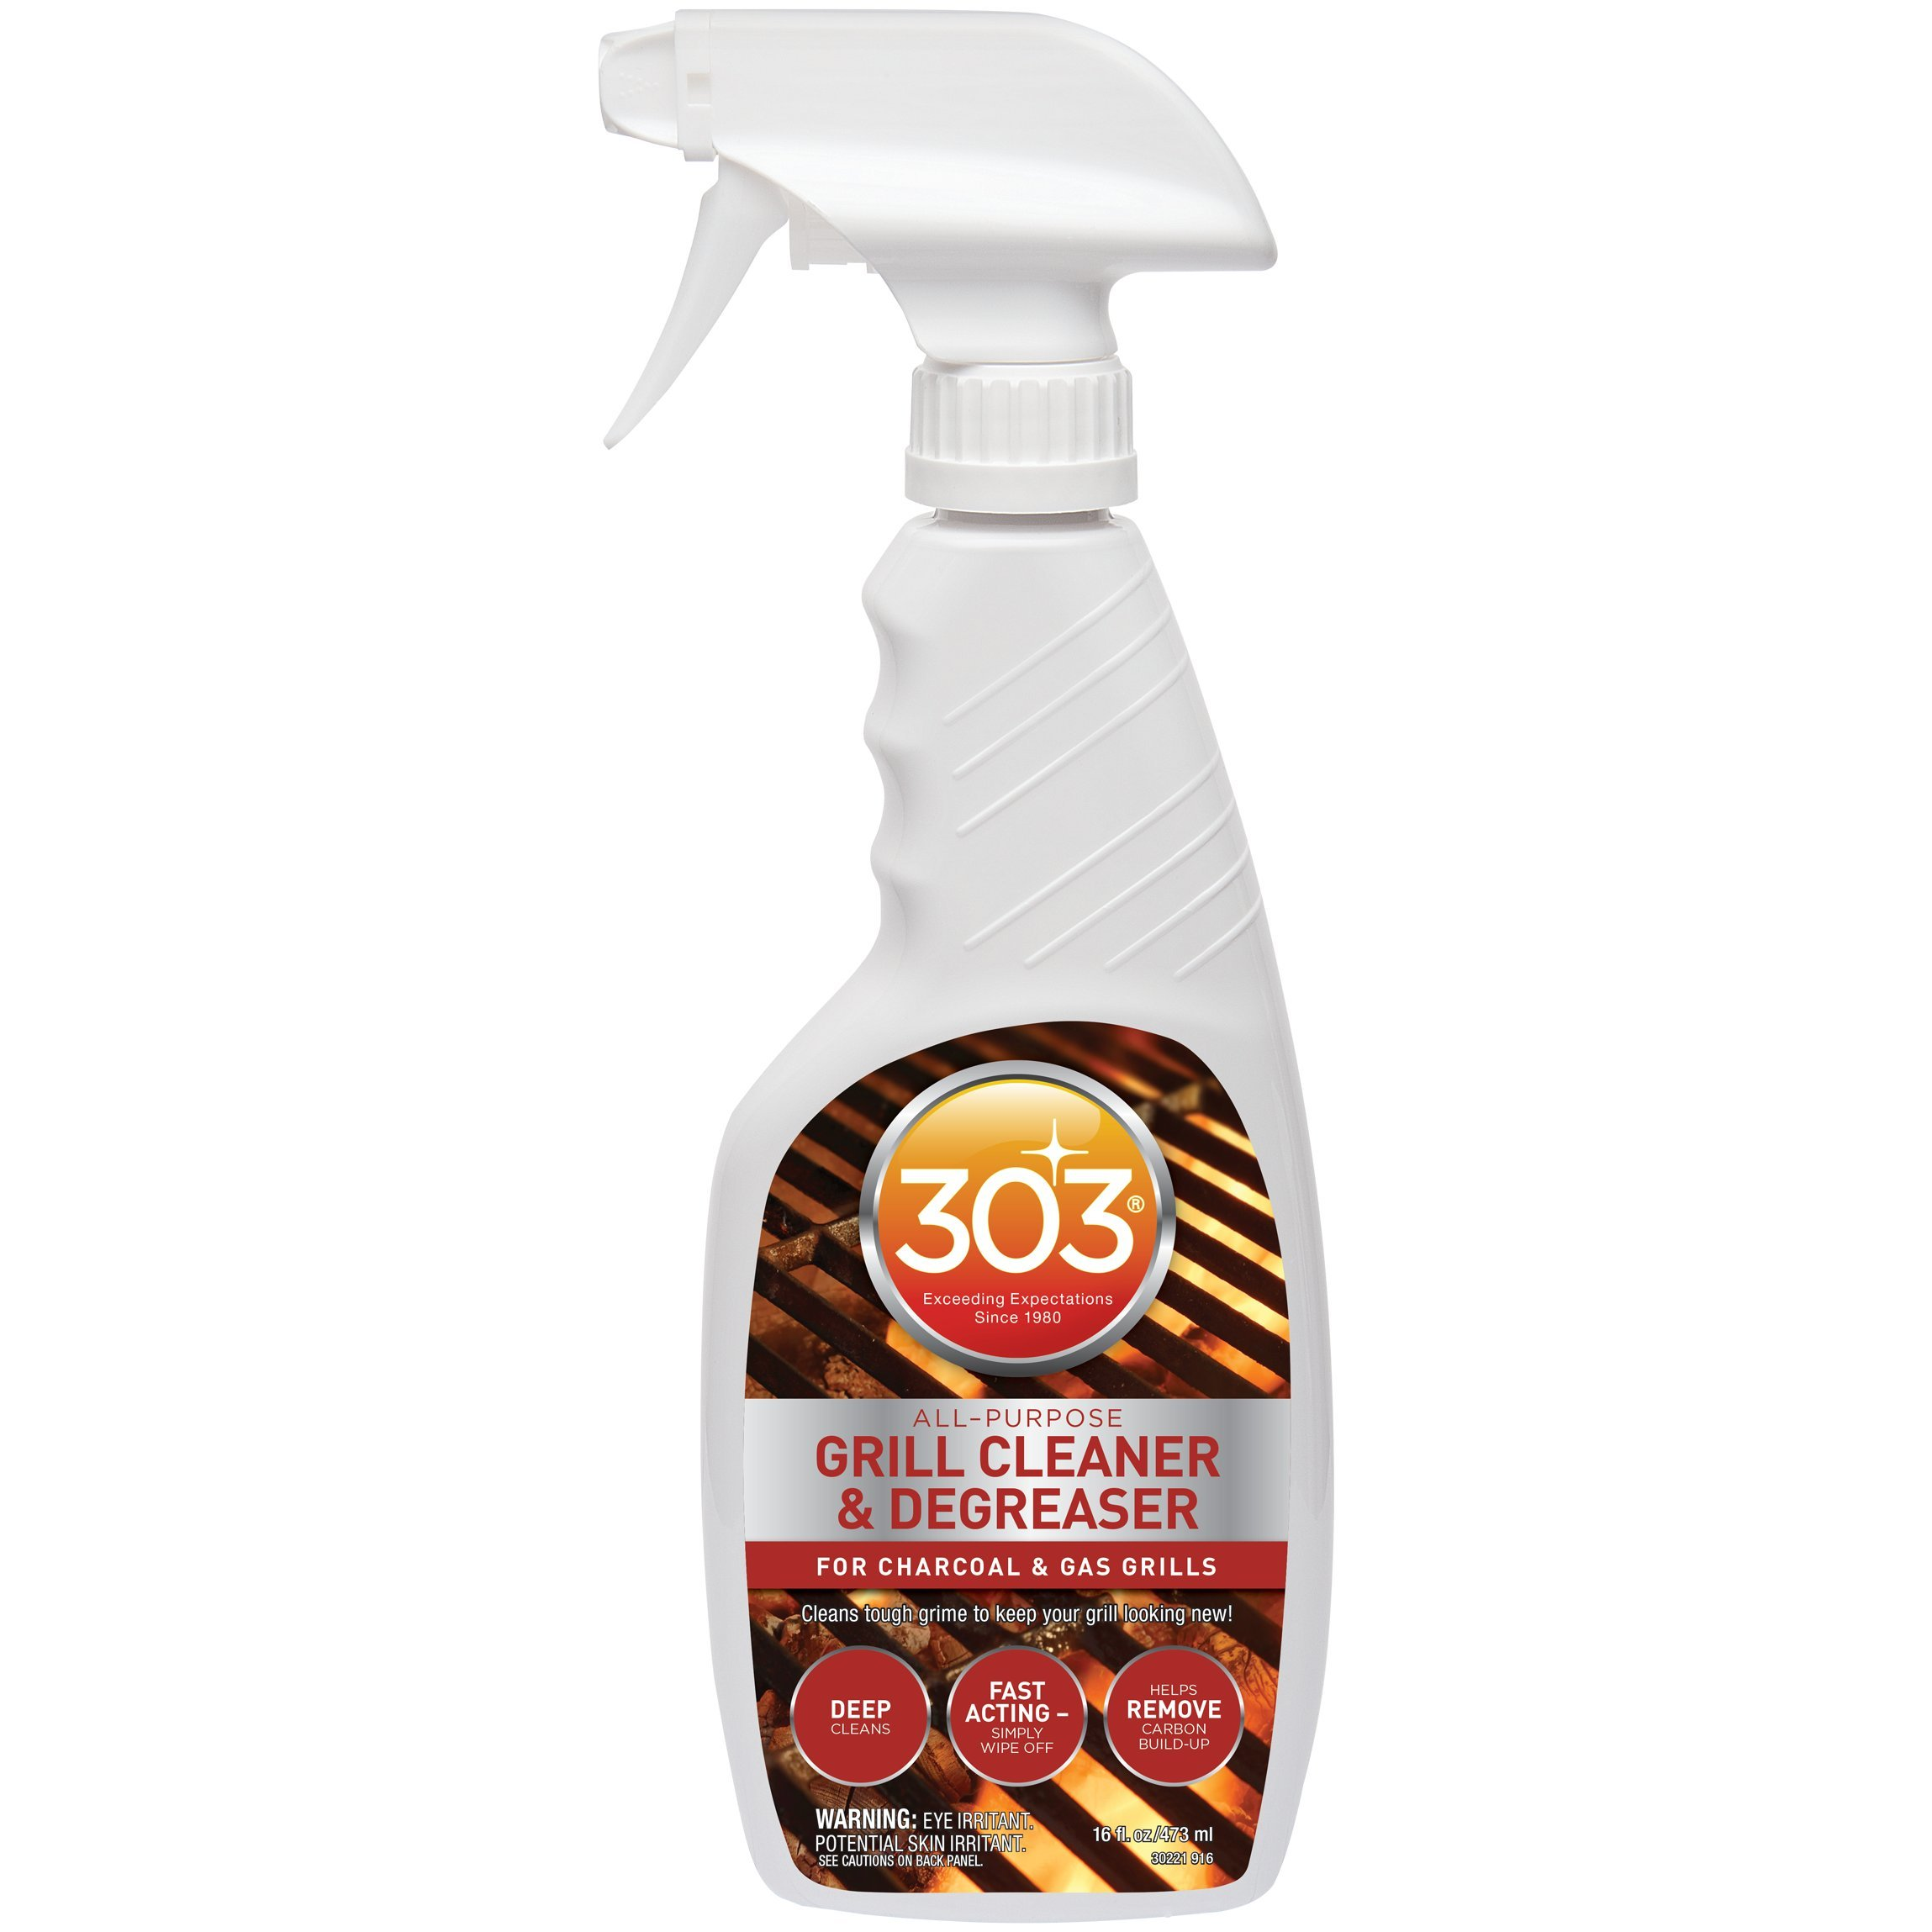 303 Grill Cleaner and Degreaesr - Professional Strength, Biodegradable for BBQ Grills and Grates, 16 fl. oz. spray, Pack of 6 by 303 Products